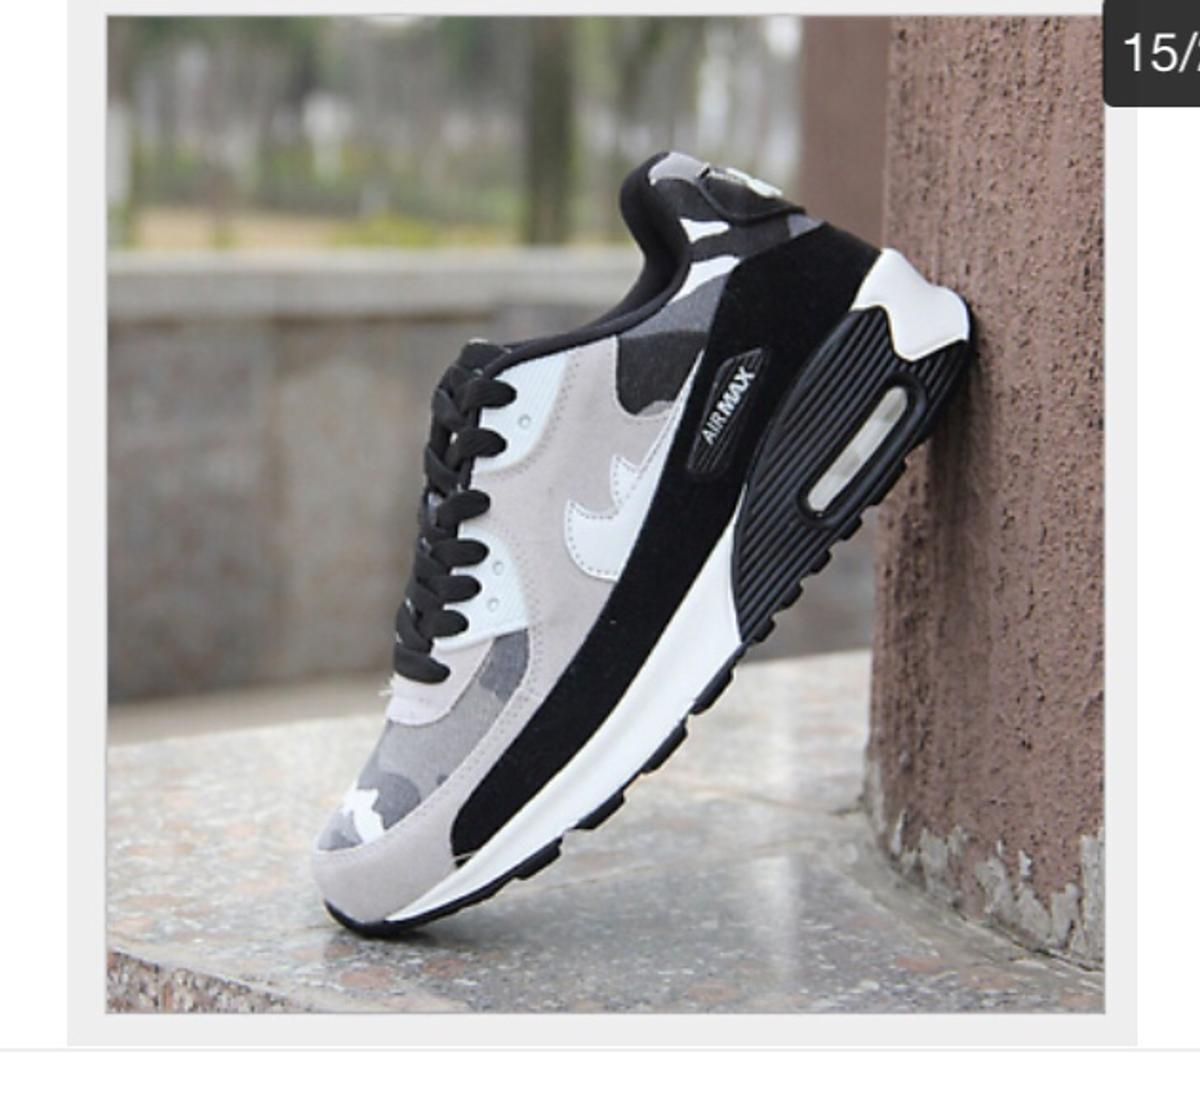 new style 1e8ce 445aa Nike vapormax tns air max etc.. in London Borough of Ealing ...